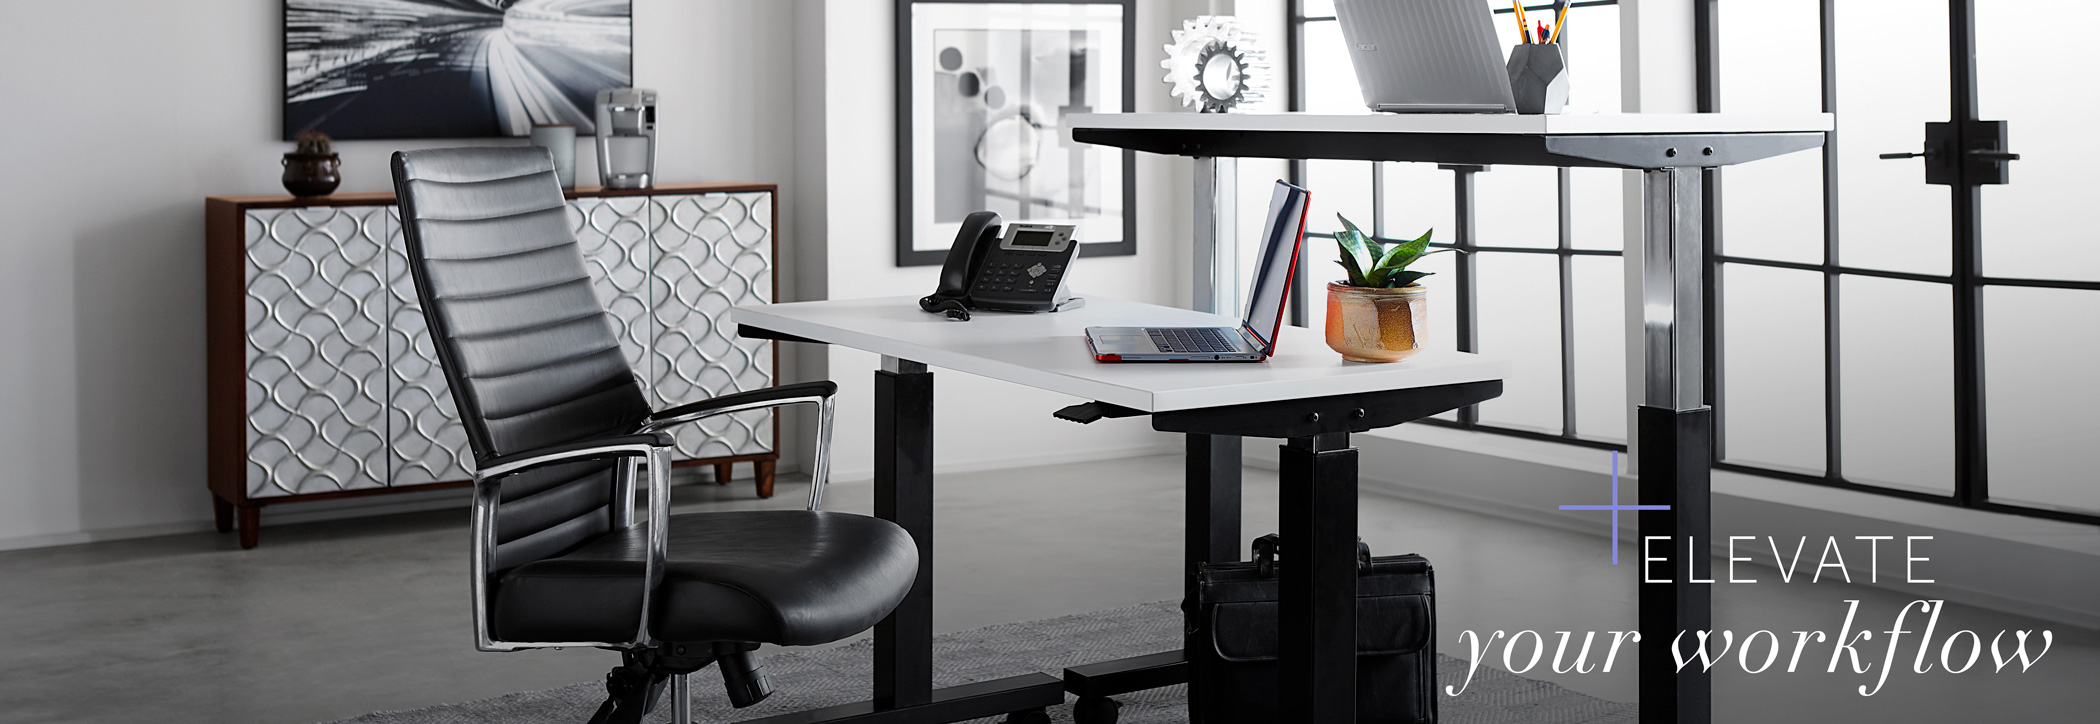 Office with rented standing desks with words 'elevate your workflow""